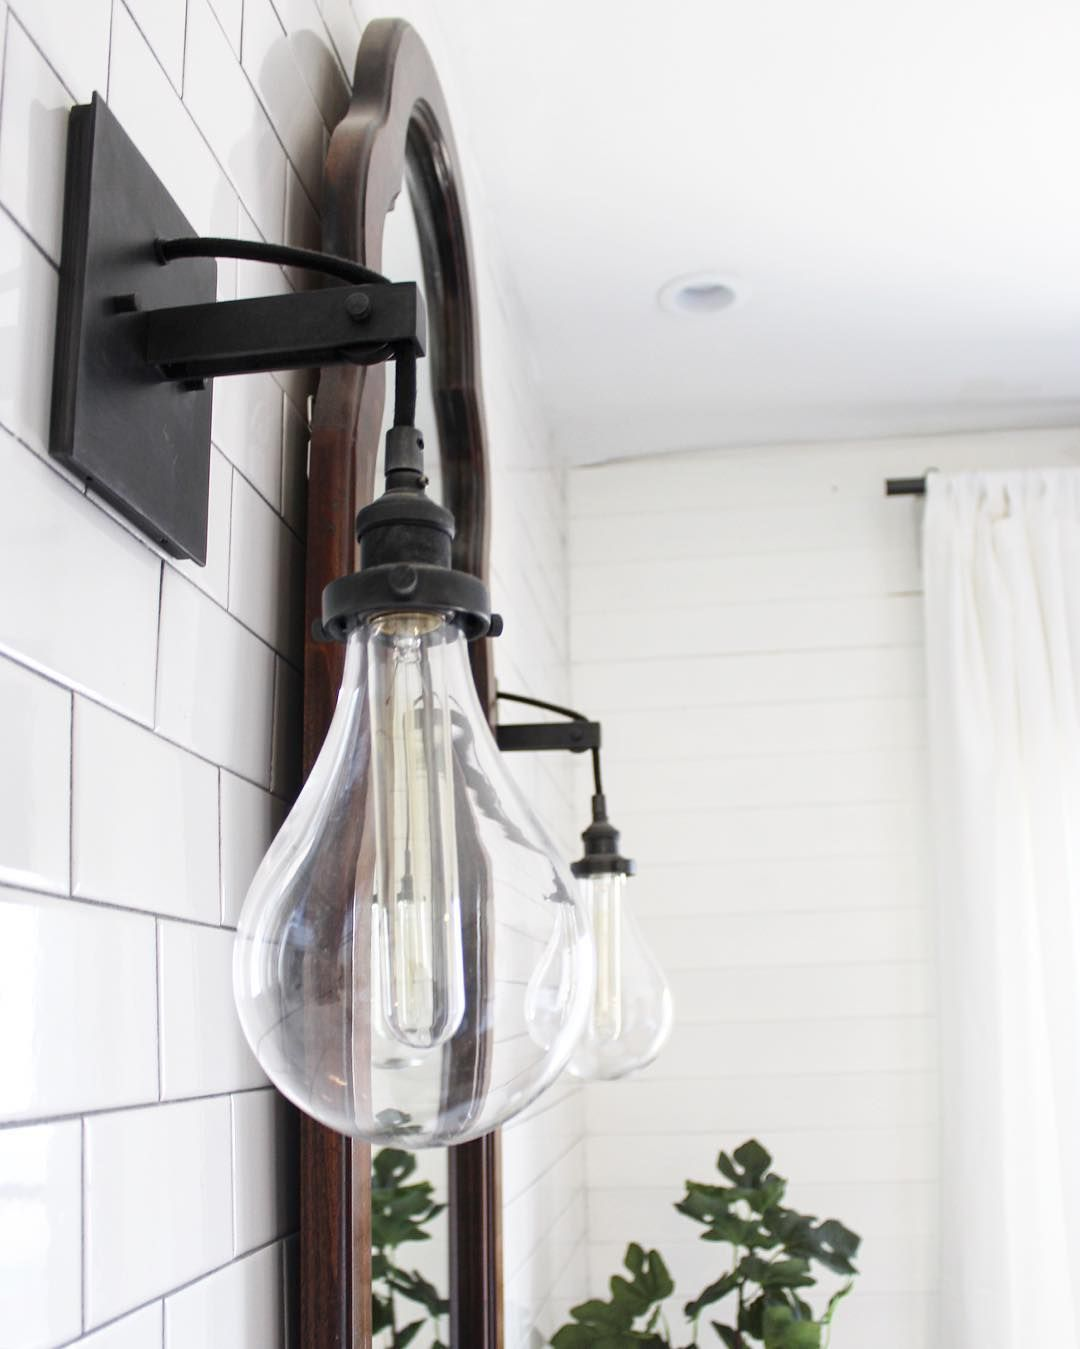 Bathroom Light Fixtures Industrial industrial bathroom sconce | see this instagram photo